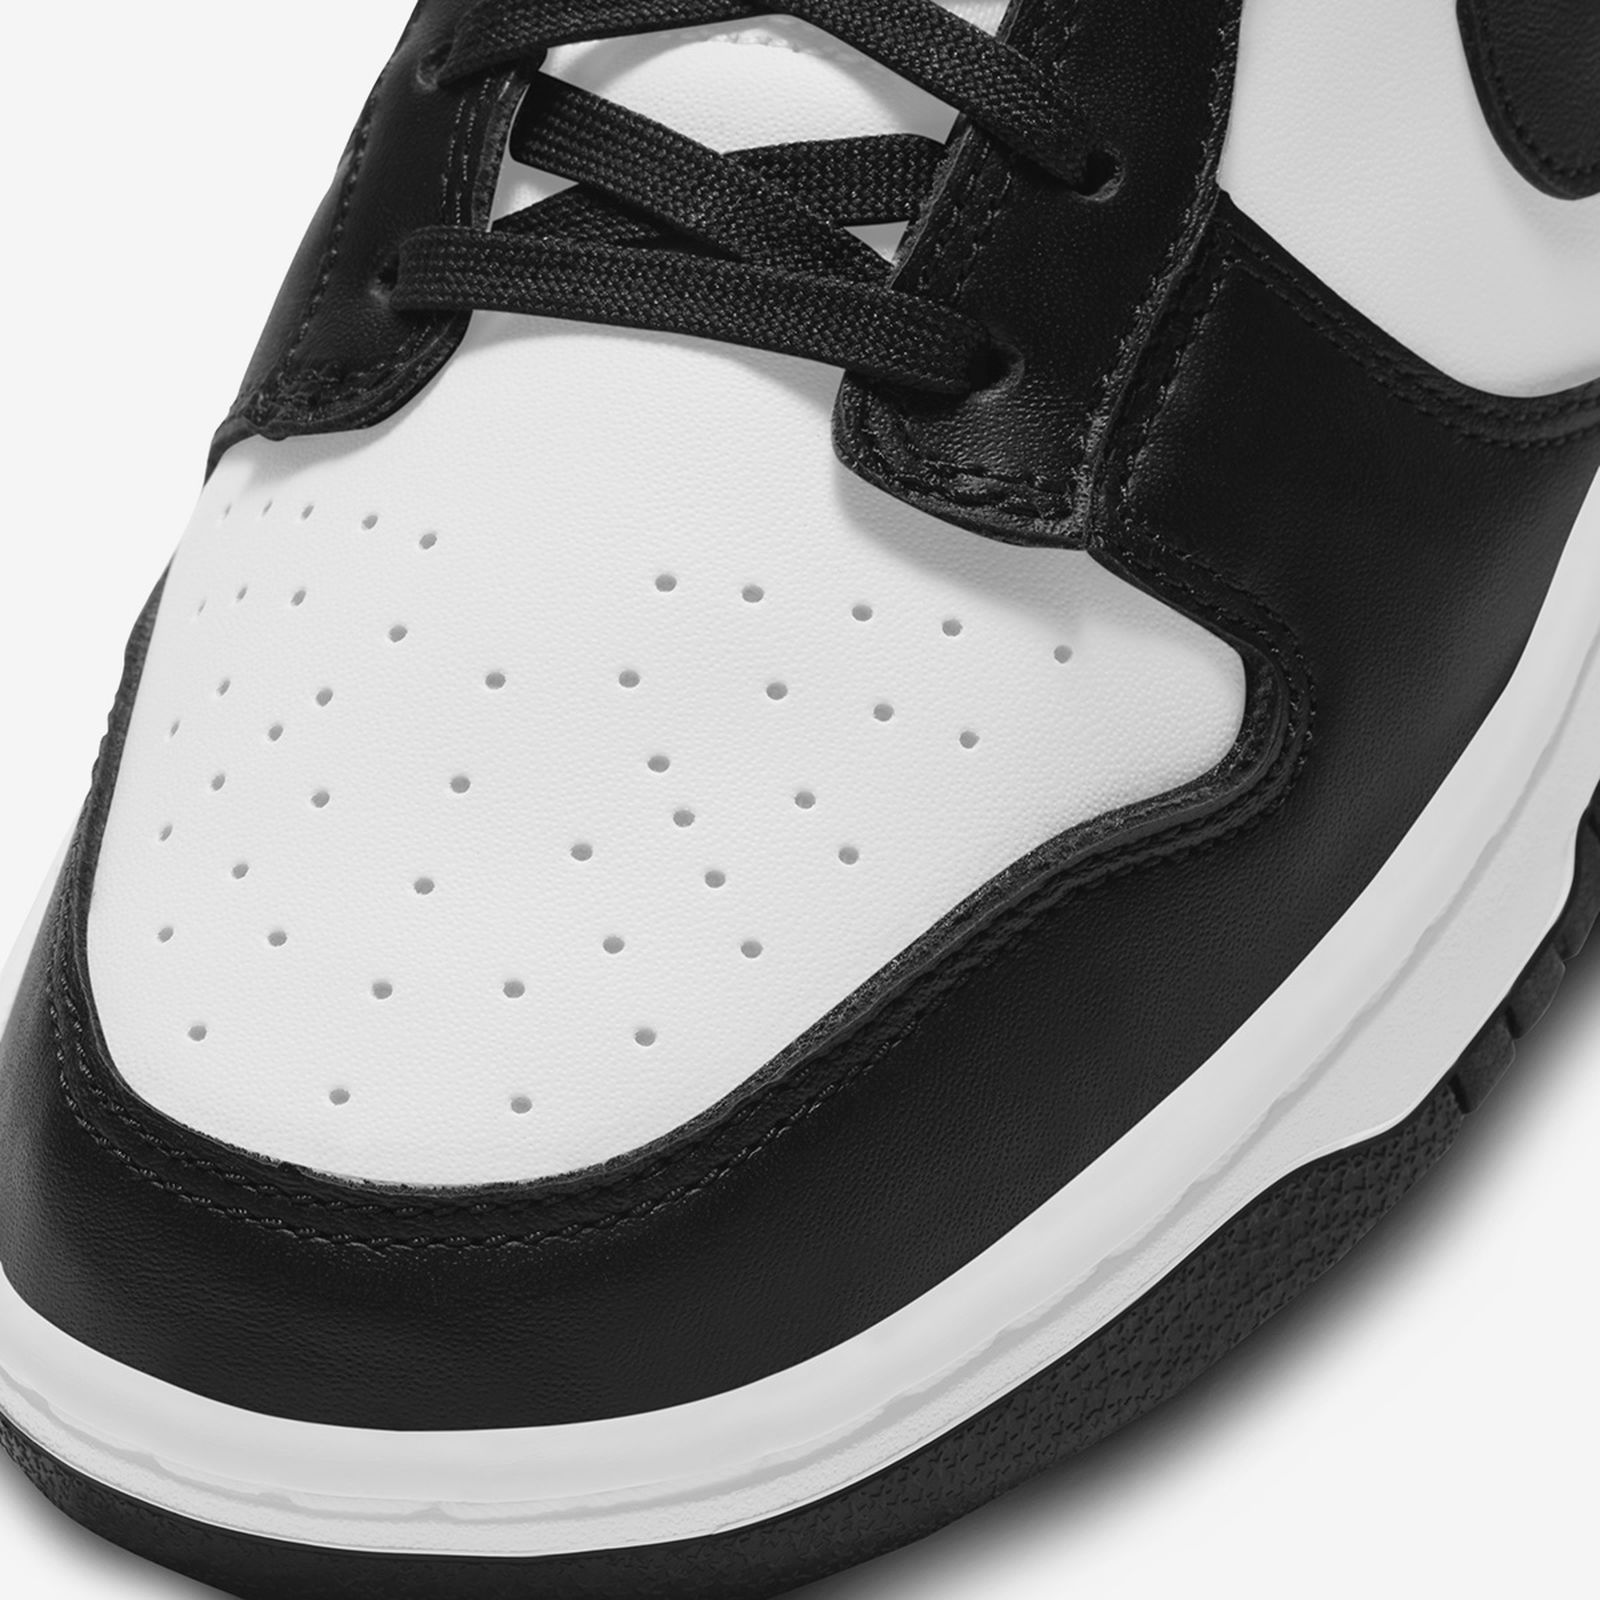 nike-dunk-spring-2021-release-date-price-1-09